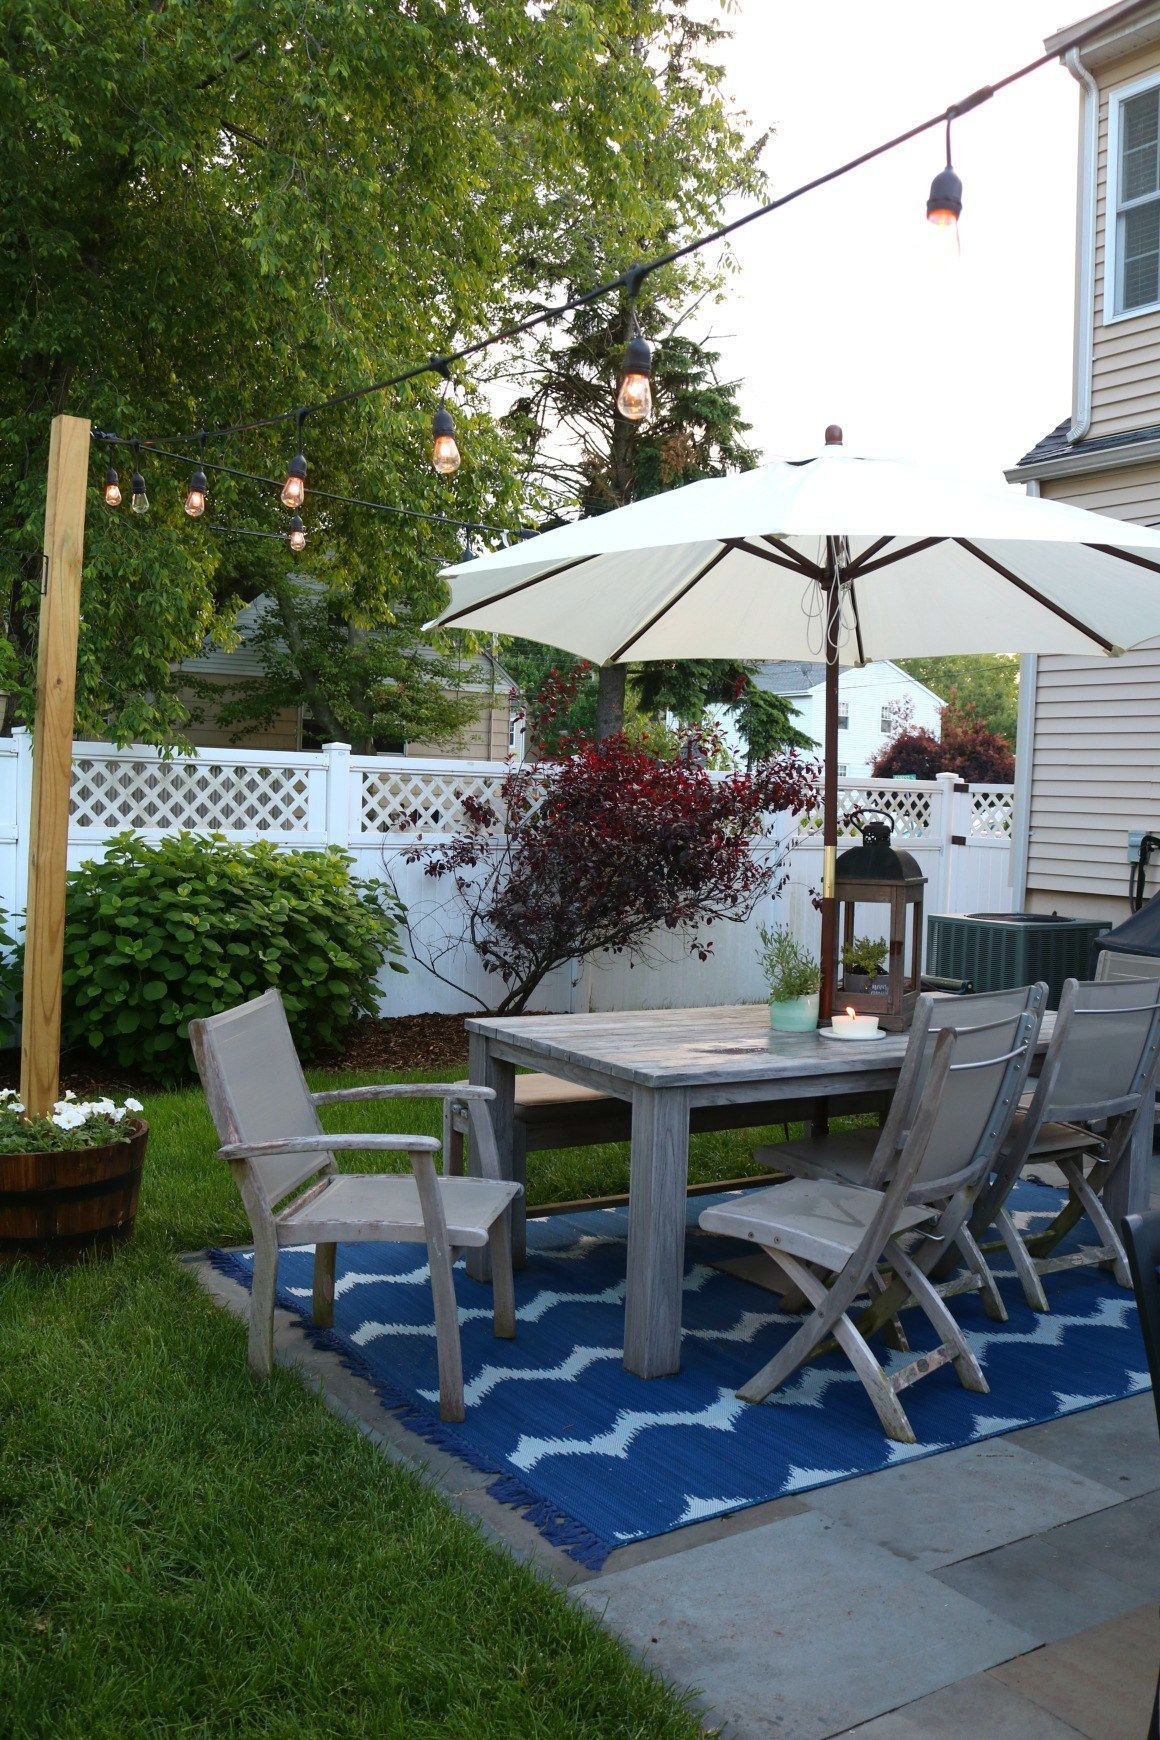 Awesome 47 Creative Diy Simple Small Backyard Makeovers Ideas More At Http Decoratrend Com 2018 09 11 47 Small Backyard Landscaping Backyard Small Backyard